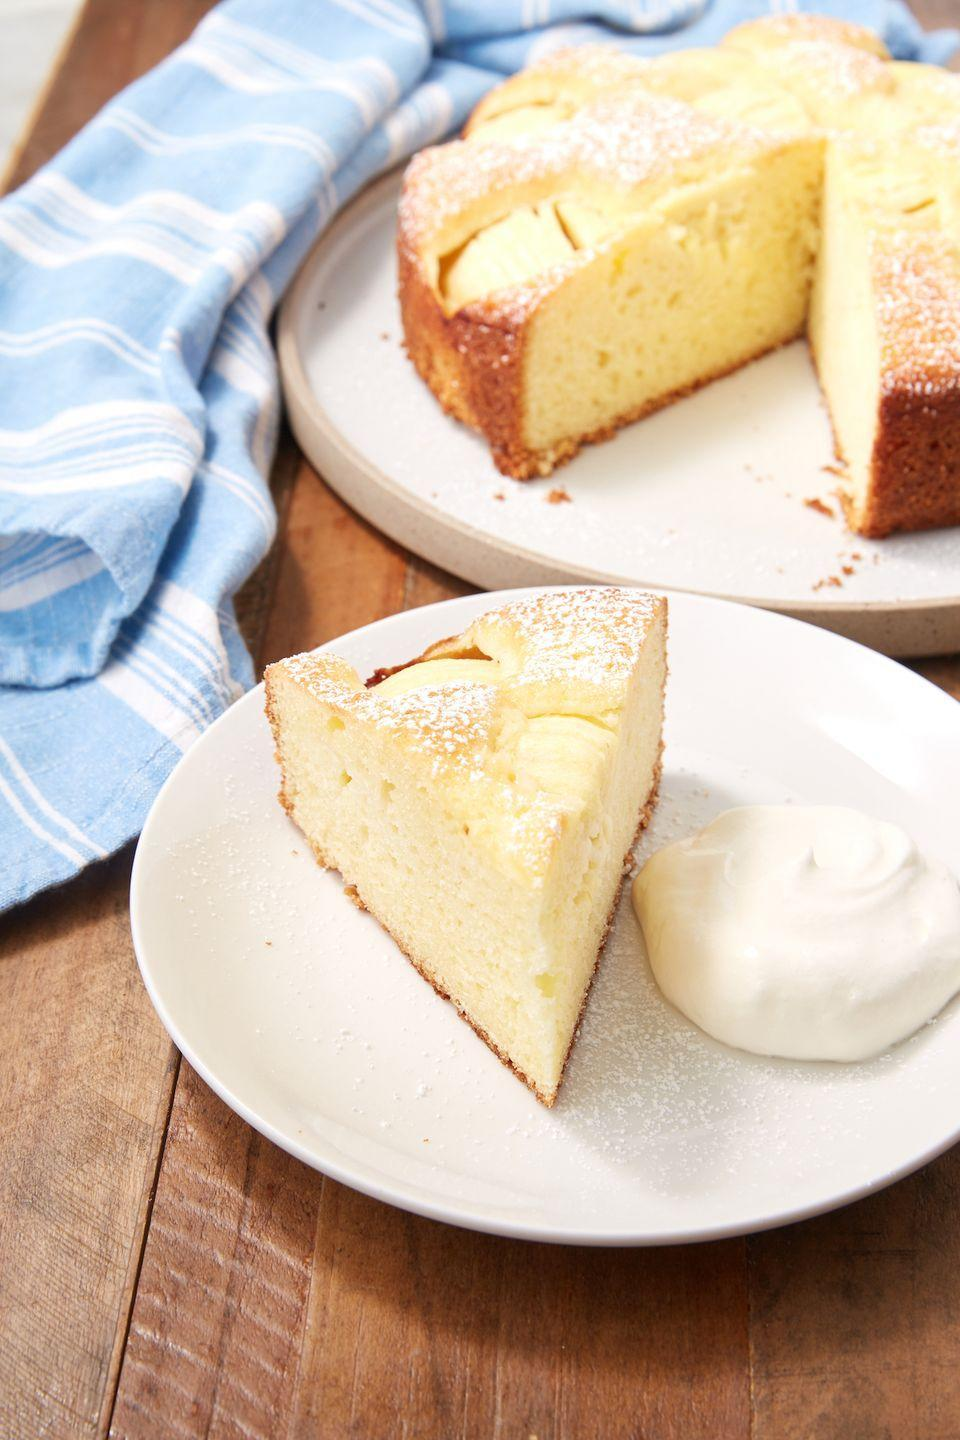 """<p>An apple cake a day...</p><p>Get the recipe from <a href=""""https://www.delish.com/cooking/recipe-ideas/a28186265/german-apple-cake-recipe/"""" rel=""""nofollow noopener"""" target=""""_blank"""" data-ylk=""""slk:Delish"""" class=""""link rapid-noclick-resp"""">Delish</a>.</p>"""